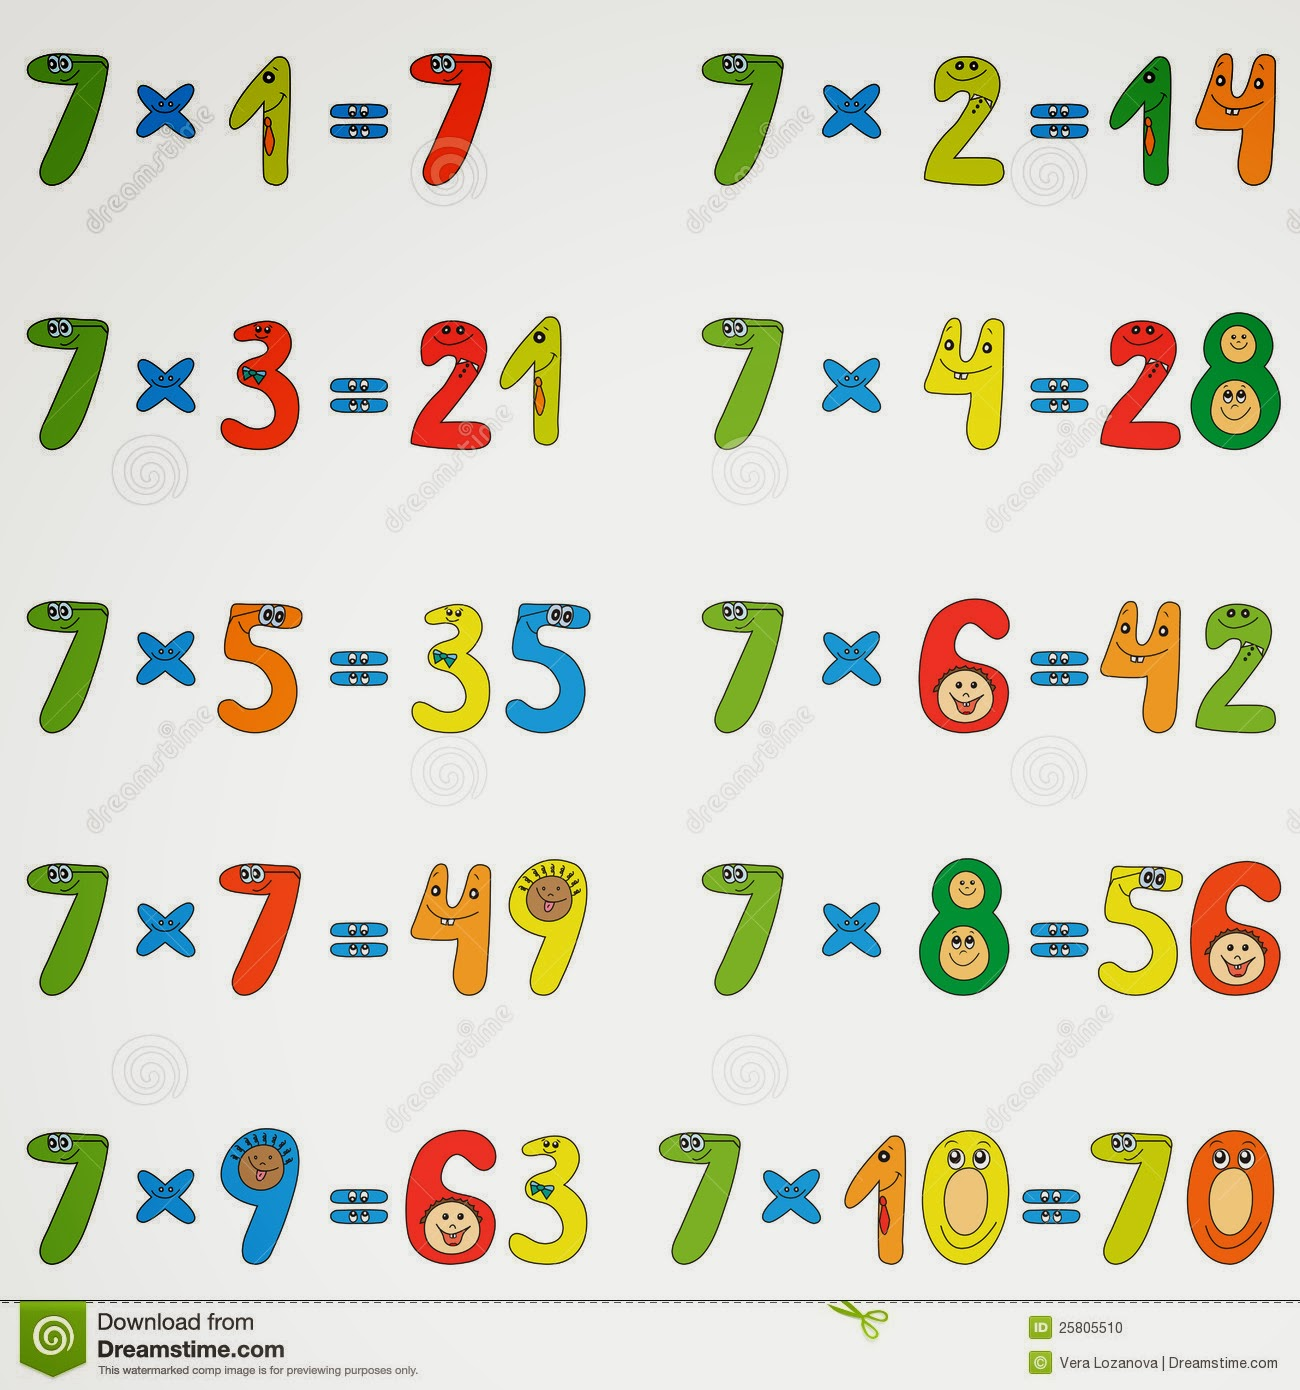 Multiplication table de multiplication 6 7 8 9 for Table de multiplication de 6 7 8 9